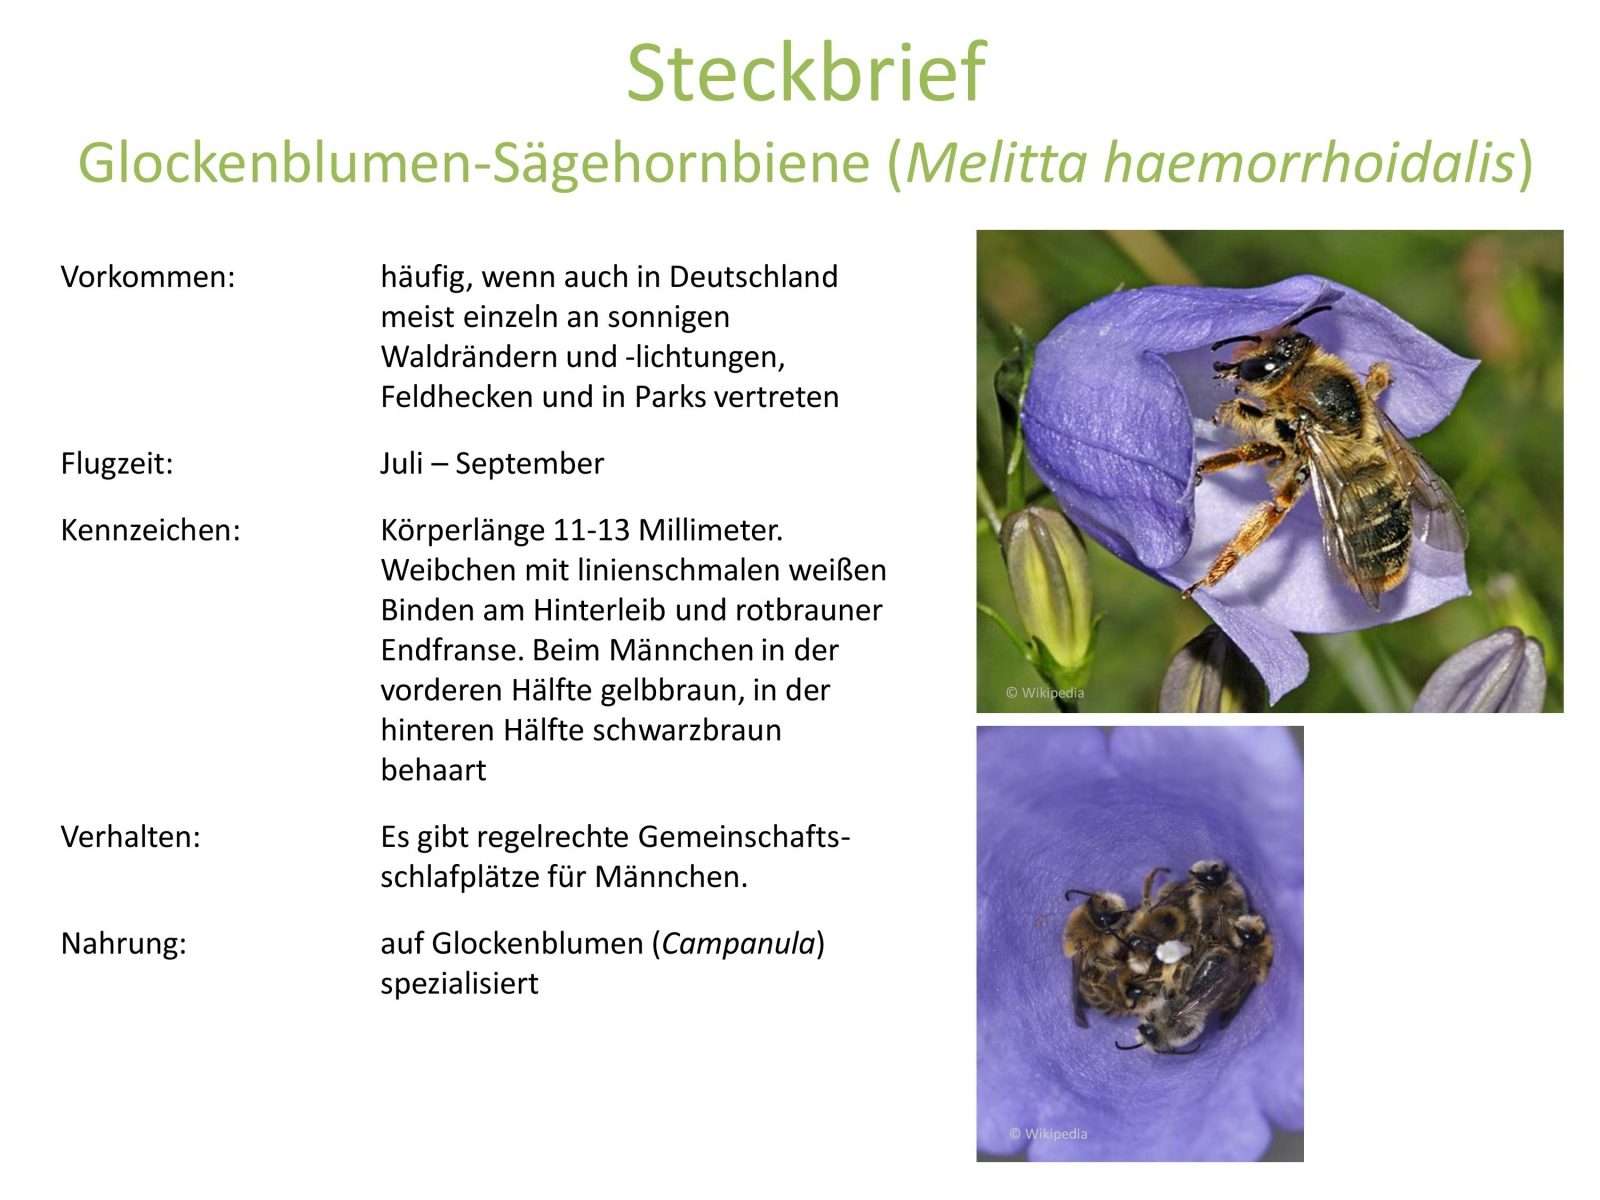 wildbienen_steckbrief_2.jpg